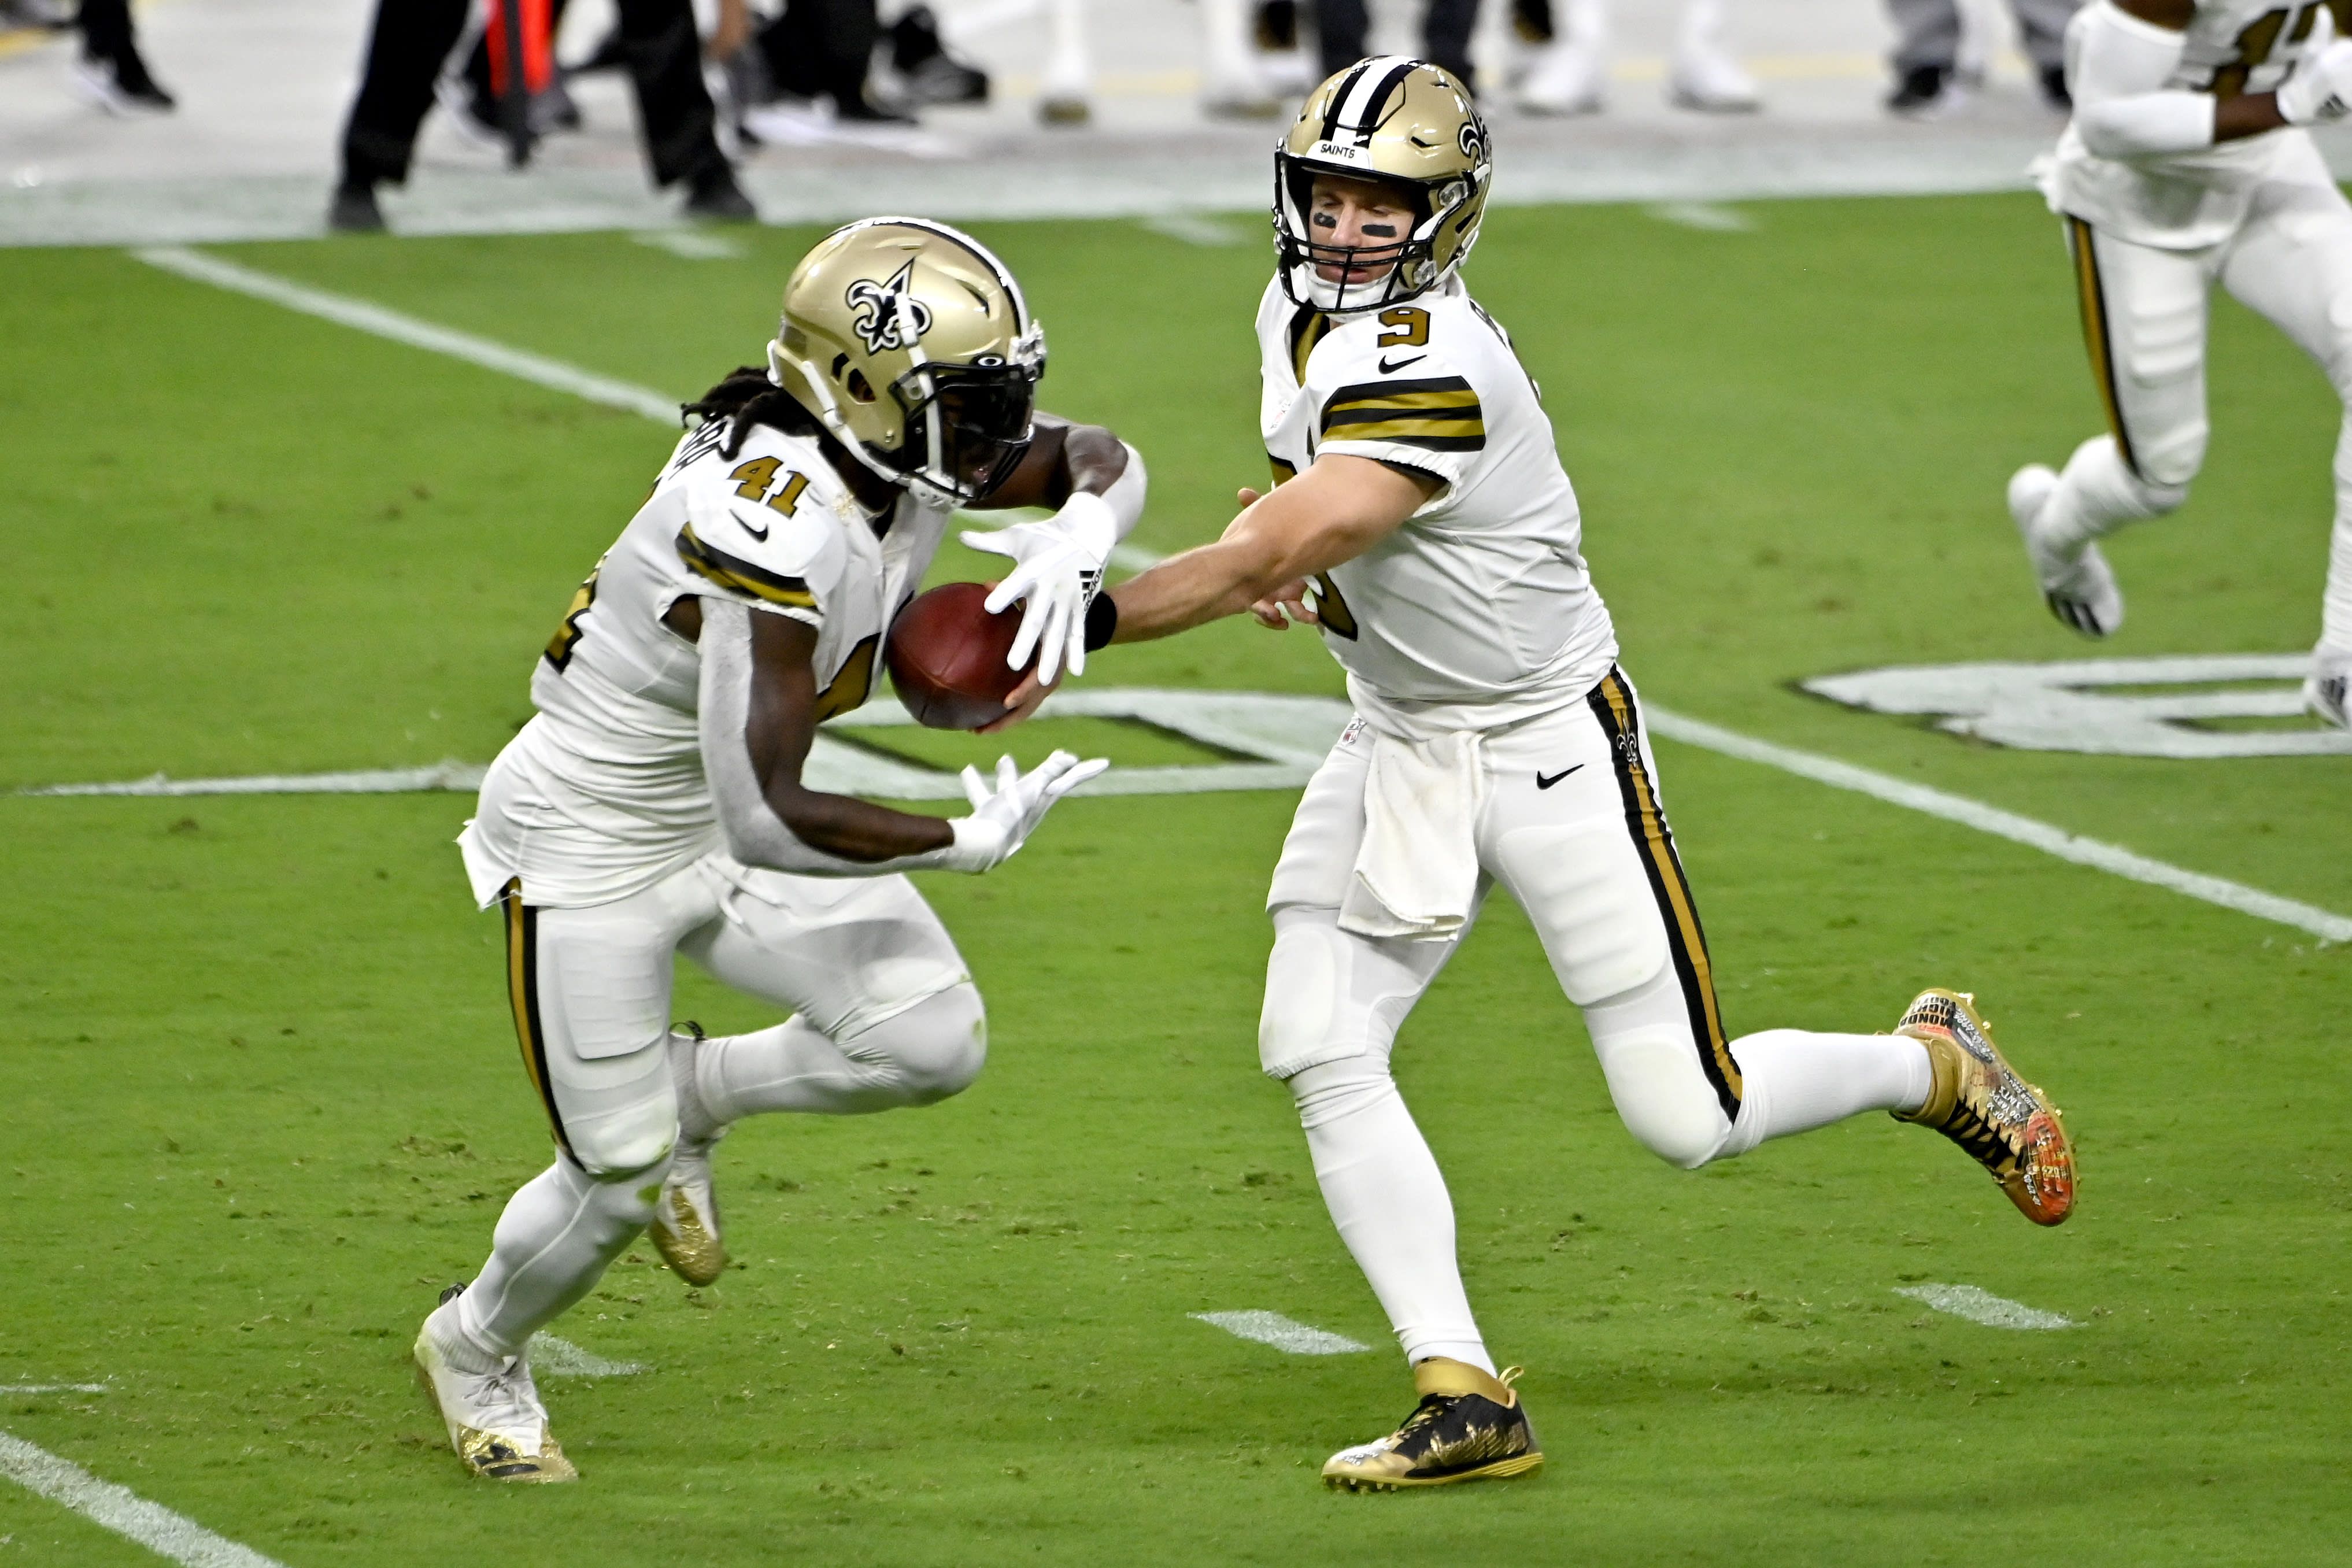 New Orleans Saints quarterback Drew Brees (9) hands the ball off to running back Alvin Kamara (41) during the first half of an NFL football game against the Las Vegas Raiders, Monday, Sept. 21, 2020, in Las Vegas. (AP Photo/David Becker)